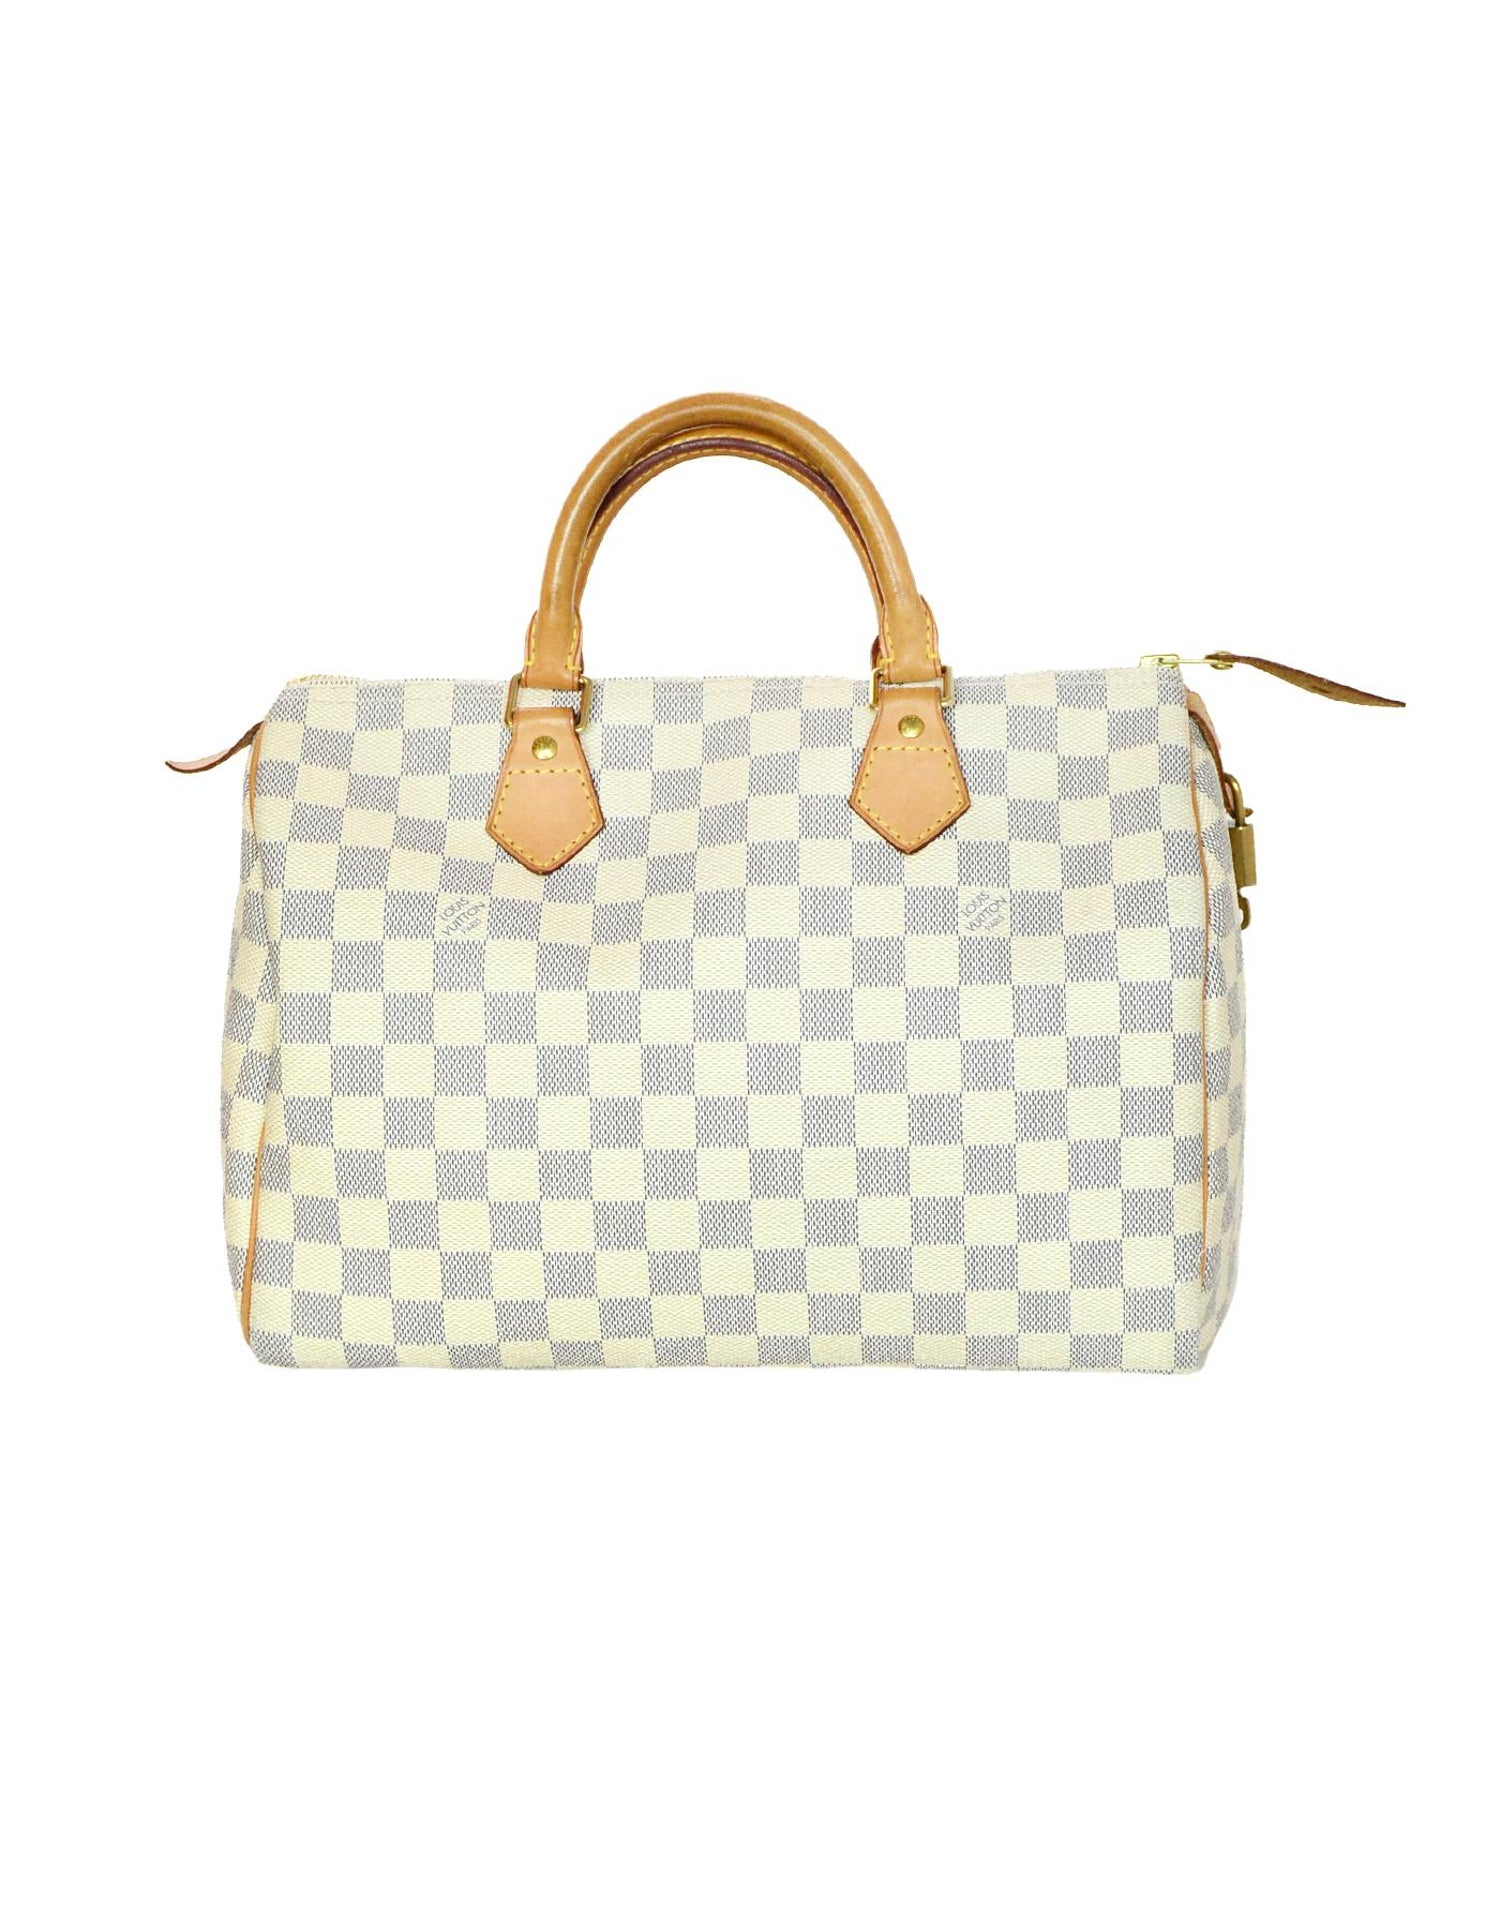 Louis Vuitton Damier Azur Speedy 30 Bag w  Lock, Key and Dust Bag For Sale  at 1stdibs aa1f1de35e